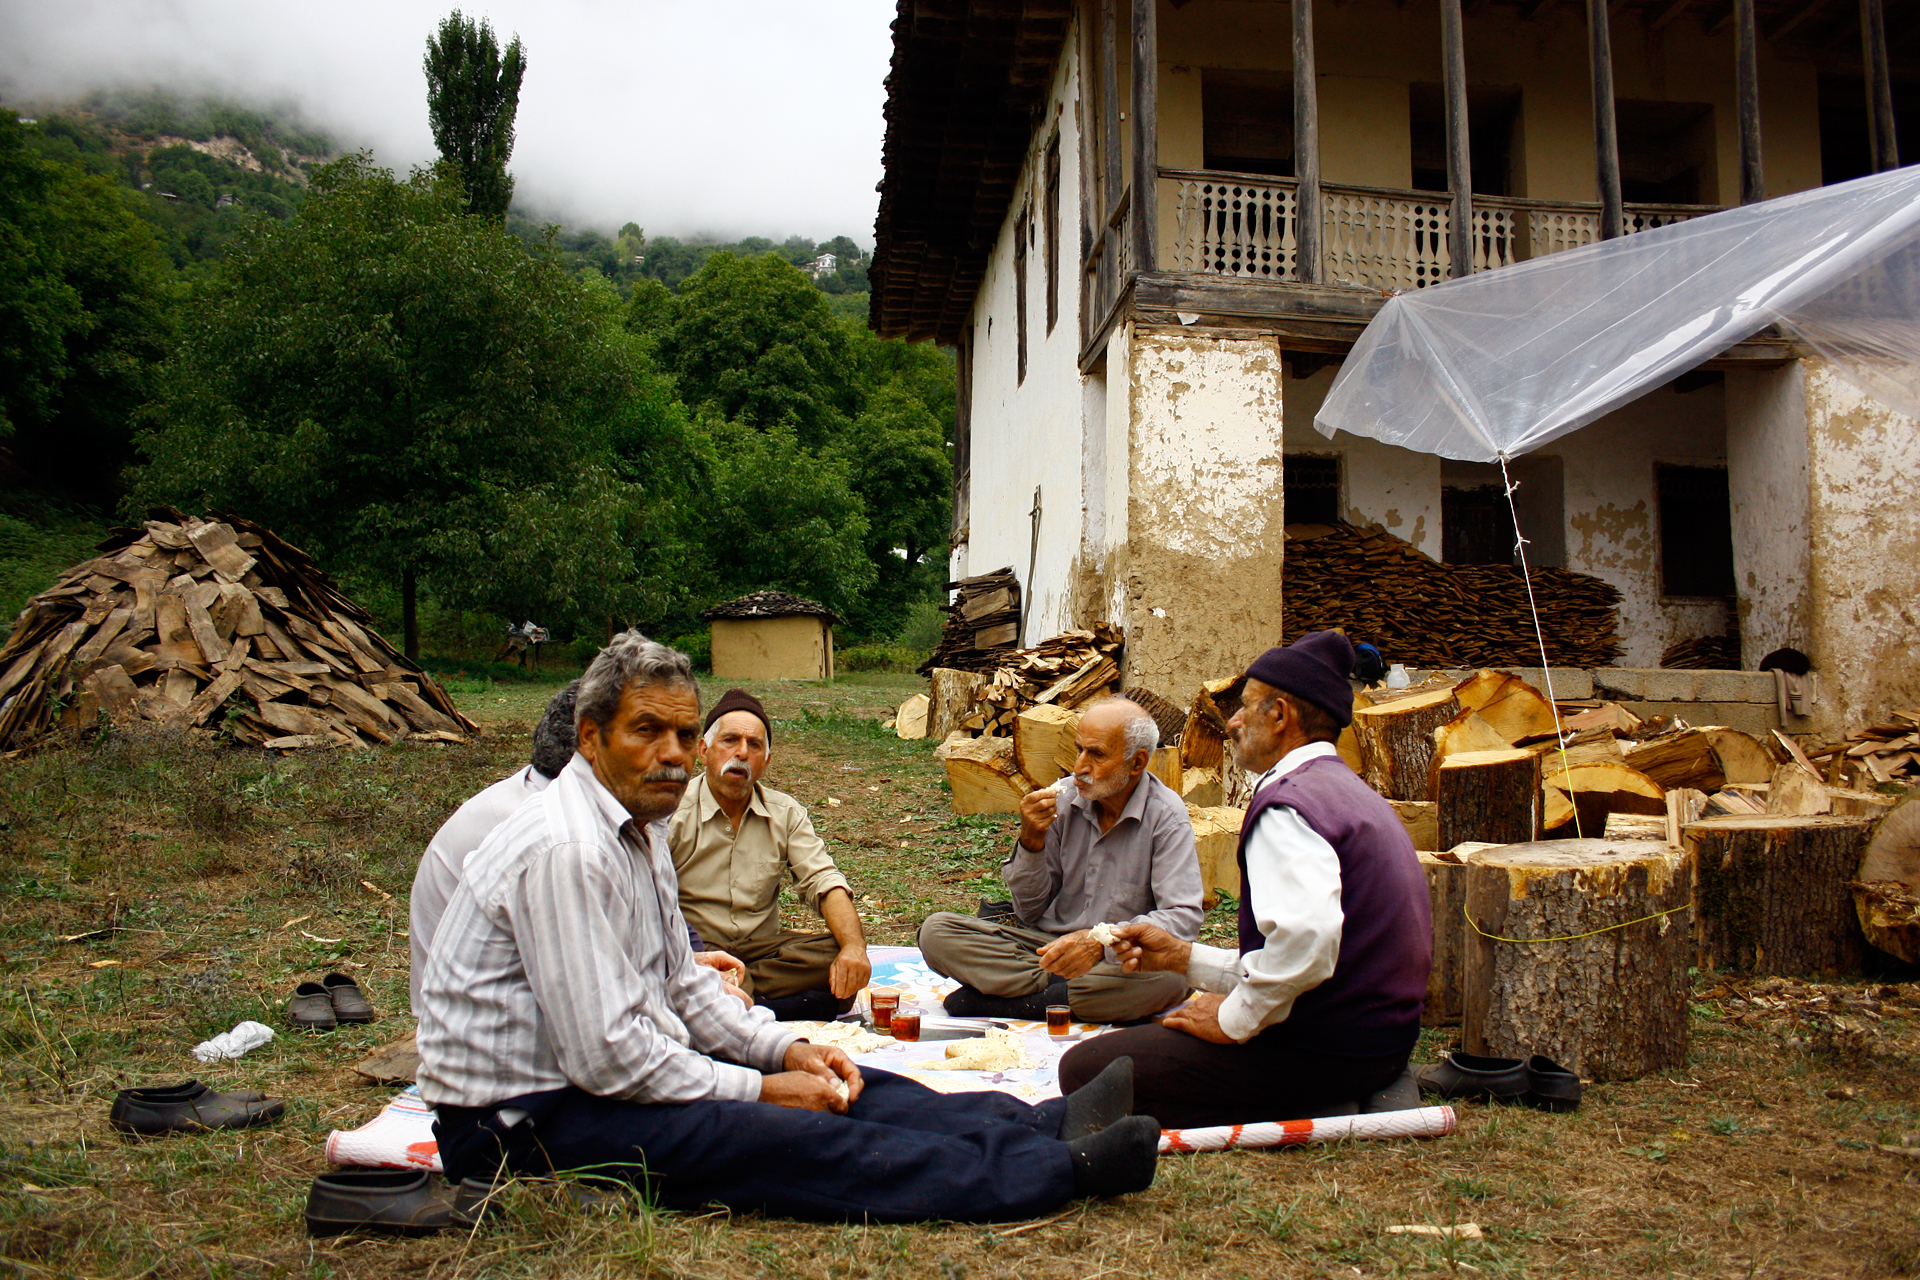 Local carpenters in Gilan, Iran drink tea in the afternoon. They made 15,000 wooden sheets of oak wood to repair the old house roof of his grandparent's farmhouse.